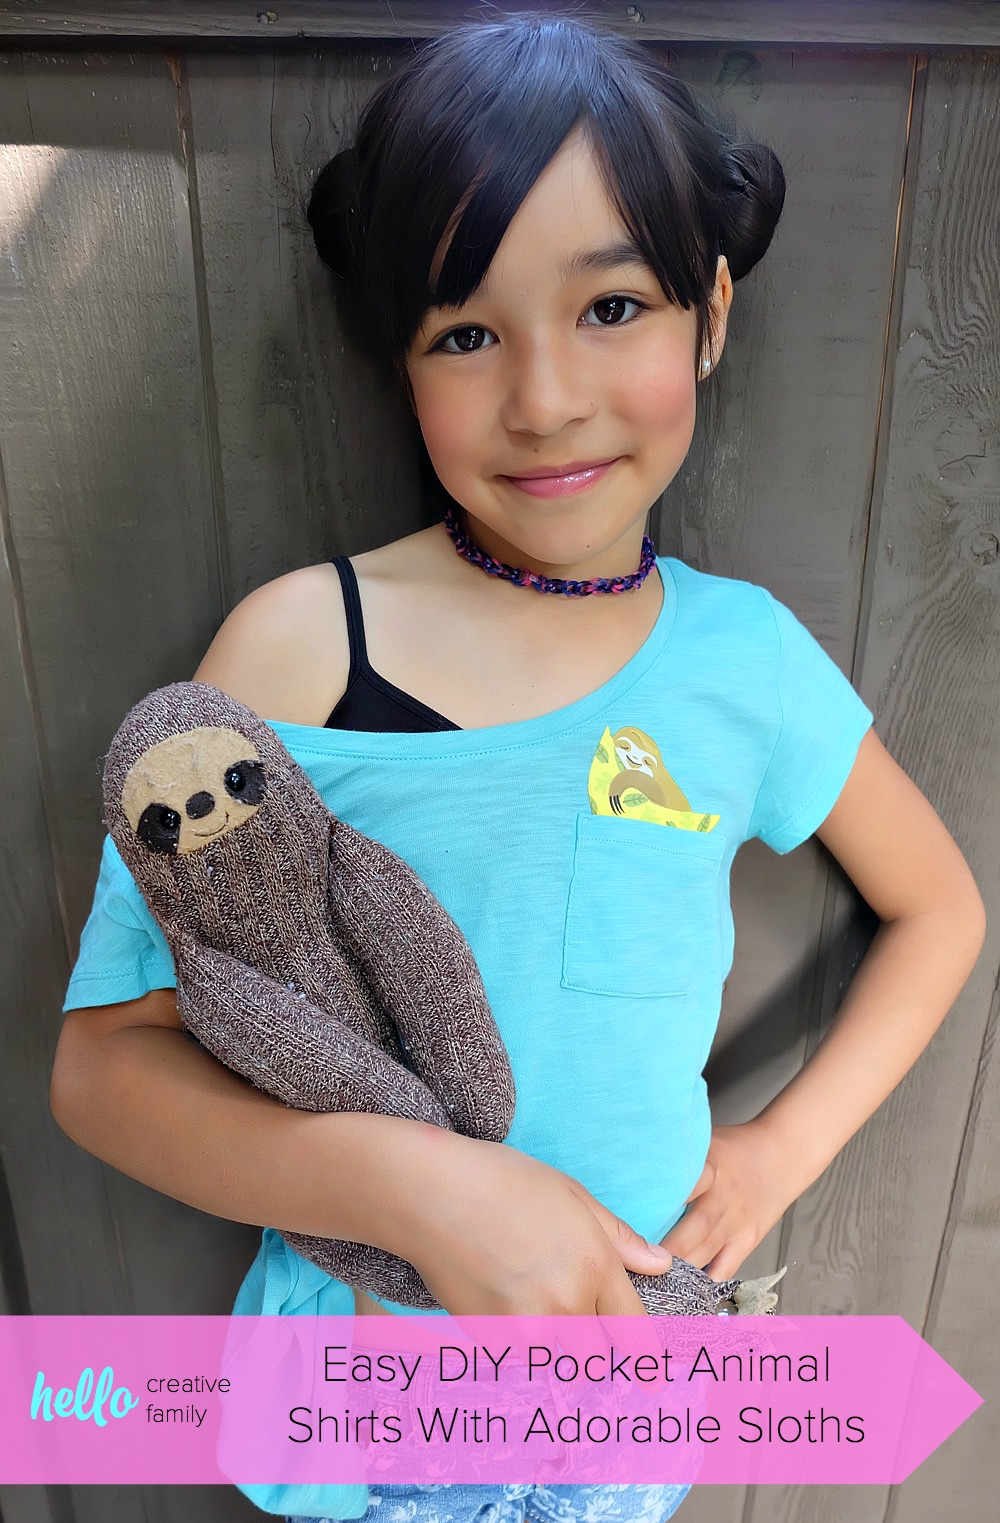 DIY an adorable pocket animal shirt in 5 minutes or less! Create a handmade version of the latest trend in kids clothing! Choose either a sloth eating ice cream or a sloth napping in a hammock and get your craft on! #DIY #KidsClothing #Handmade #BackToSchool #PocketShirt